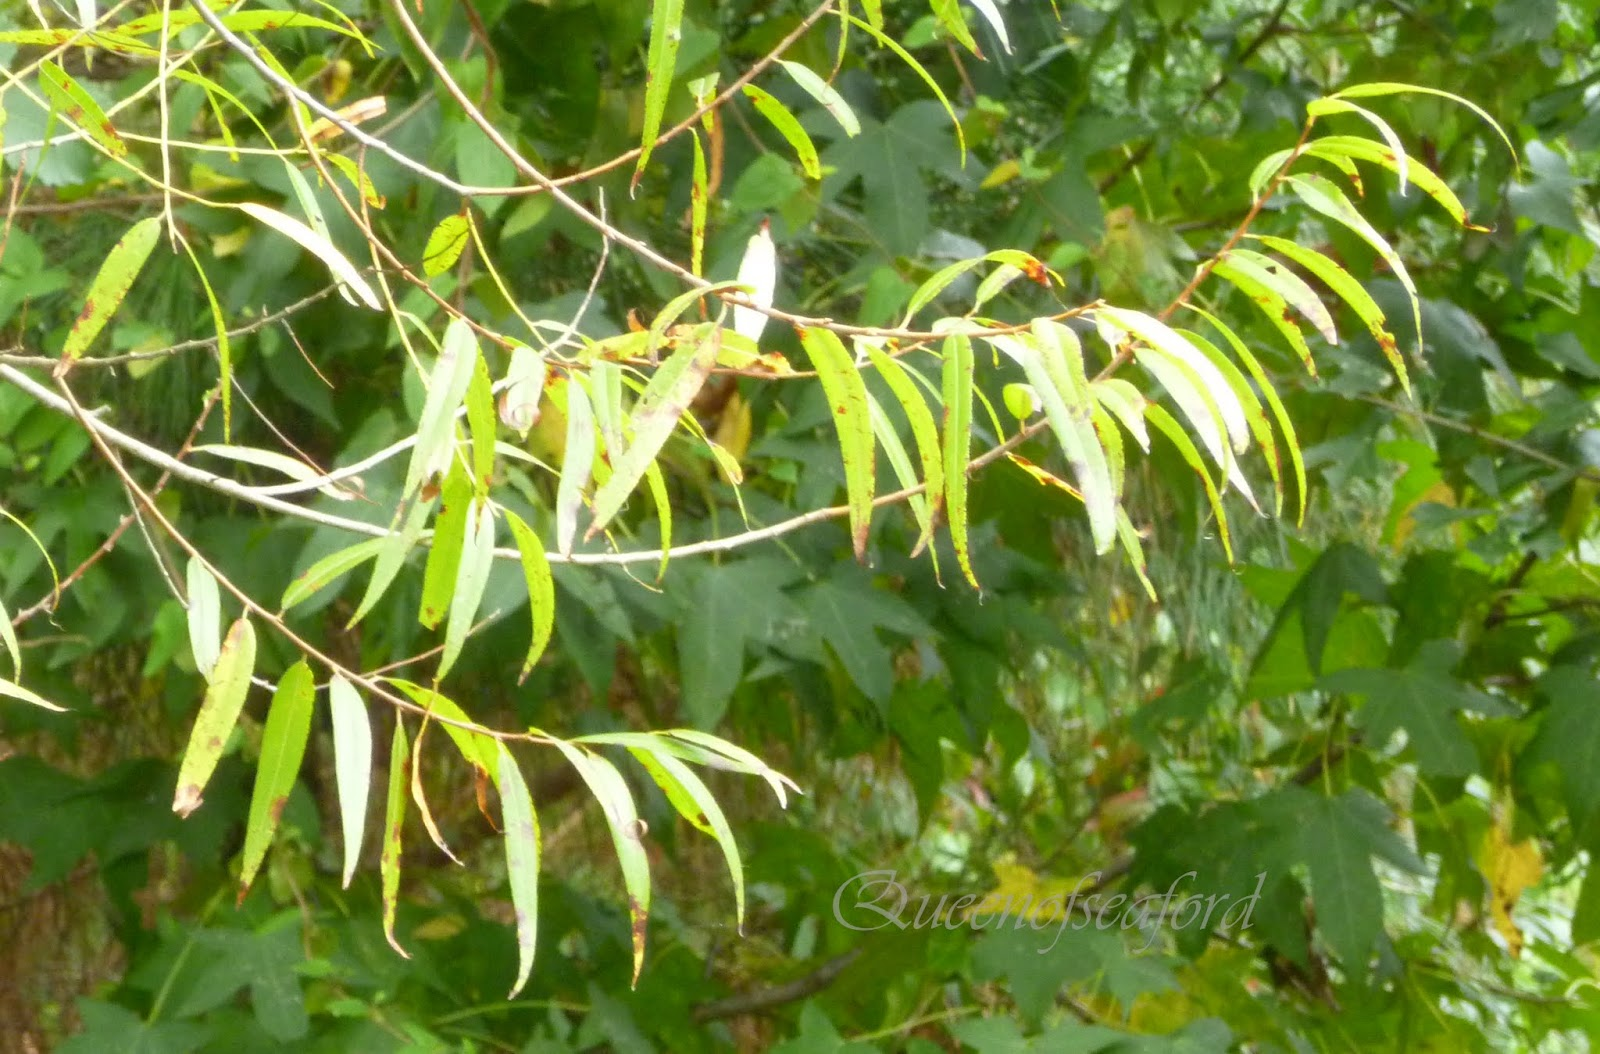 The Queen of Seaford: Tuesday\'s Trees - Willow